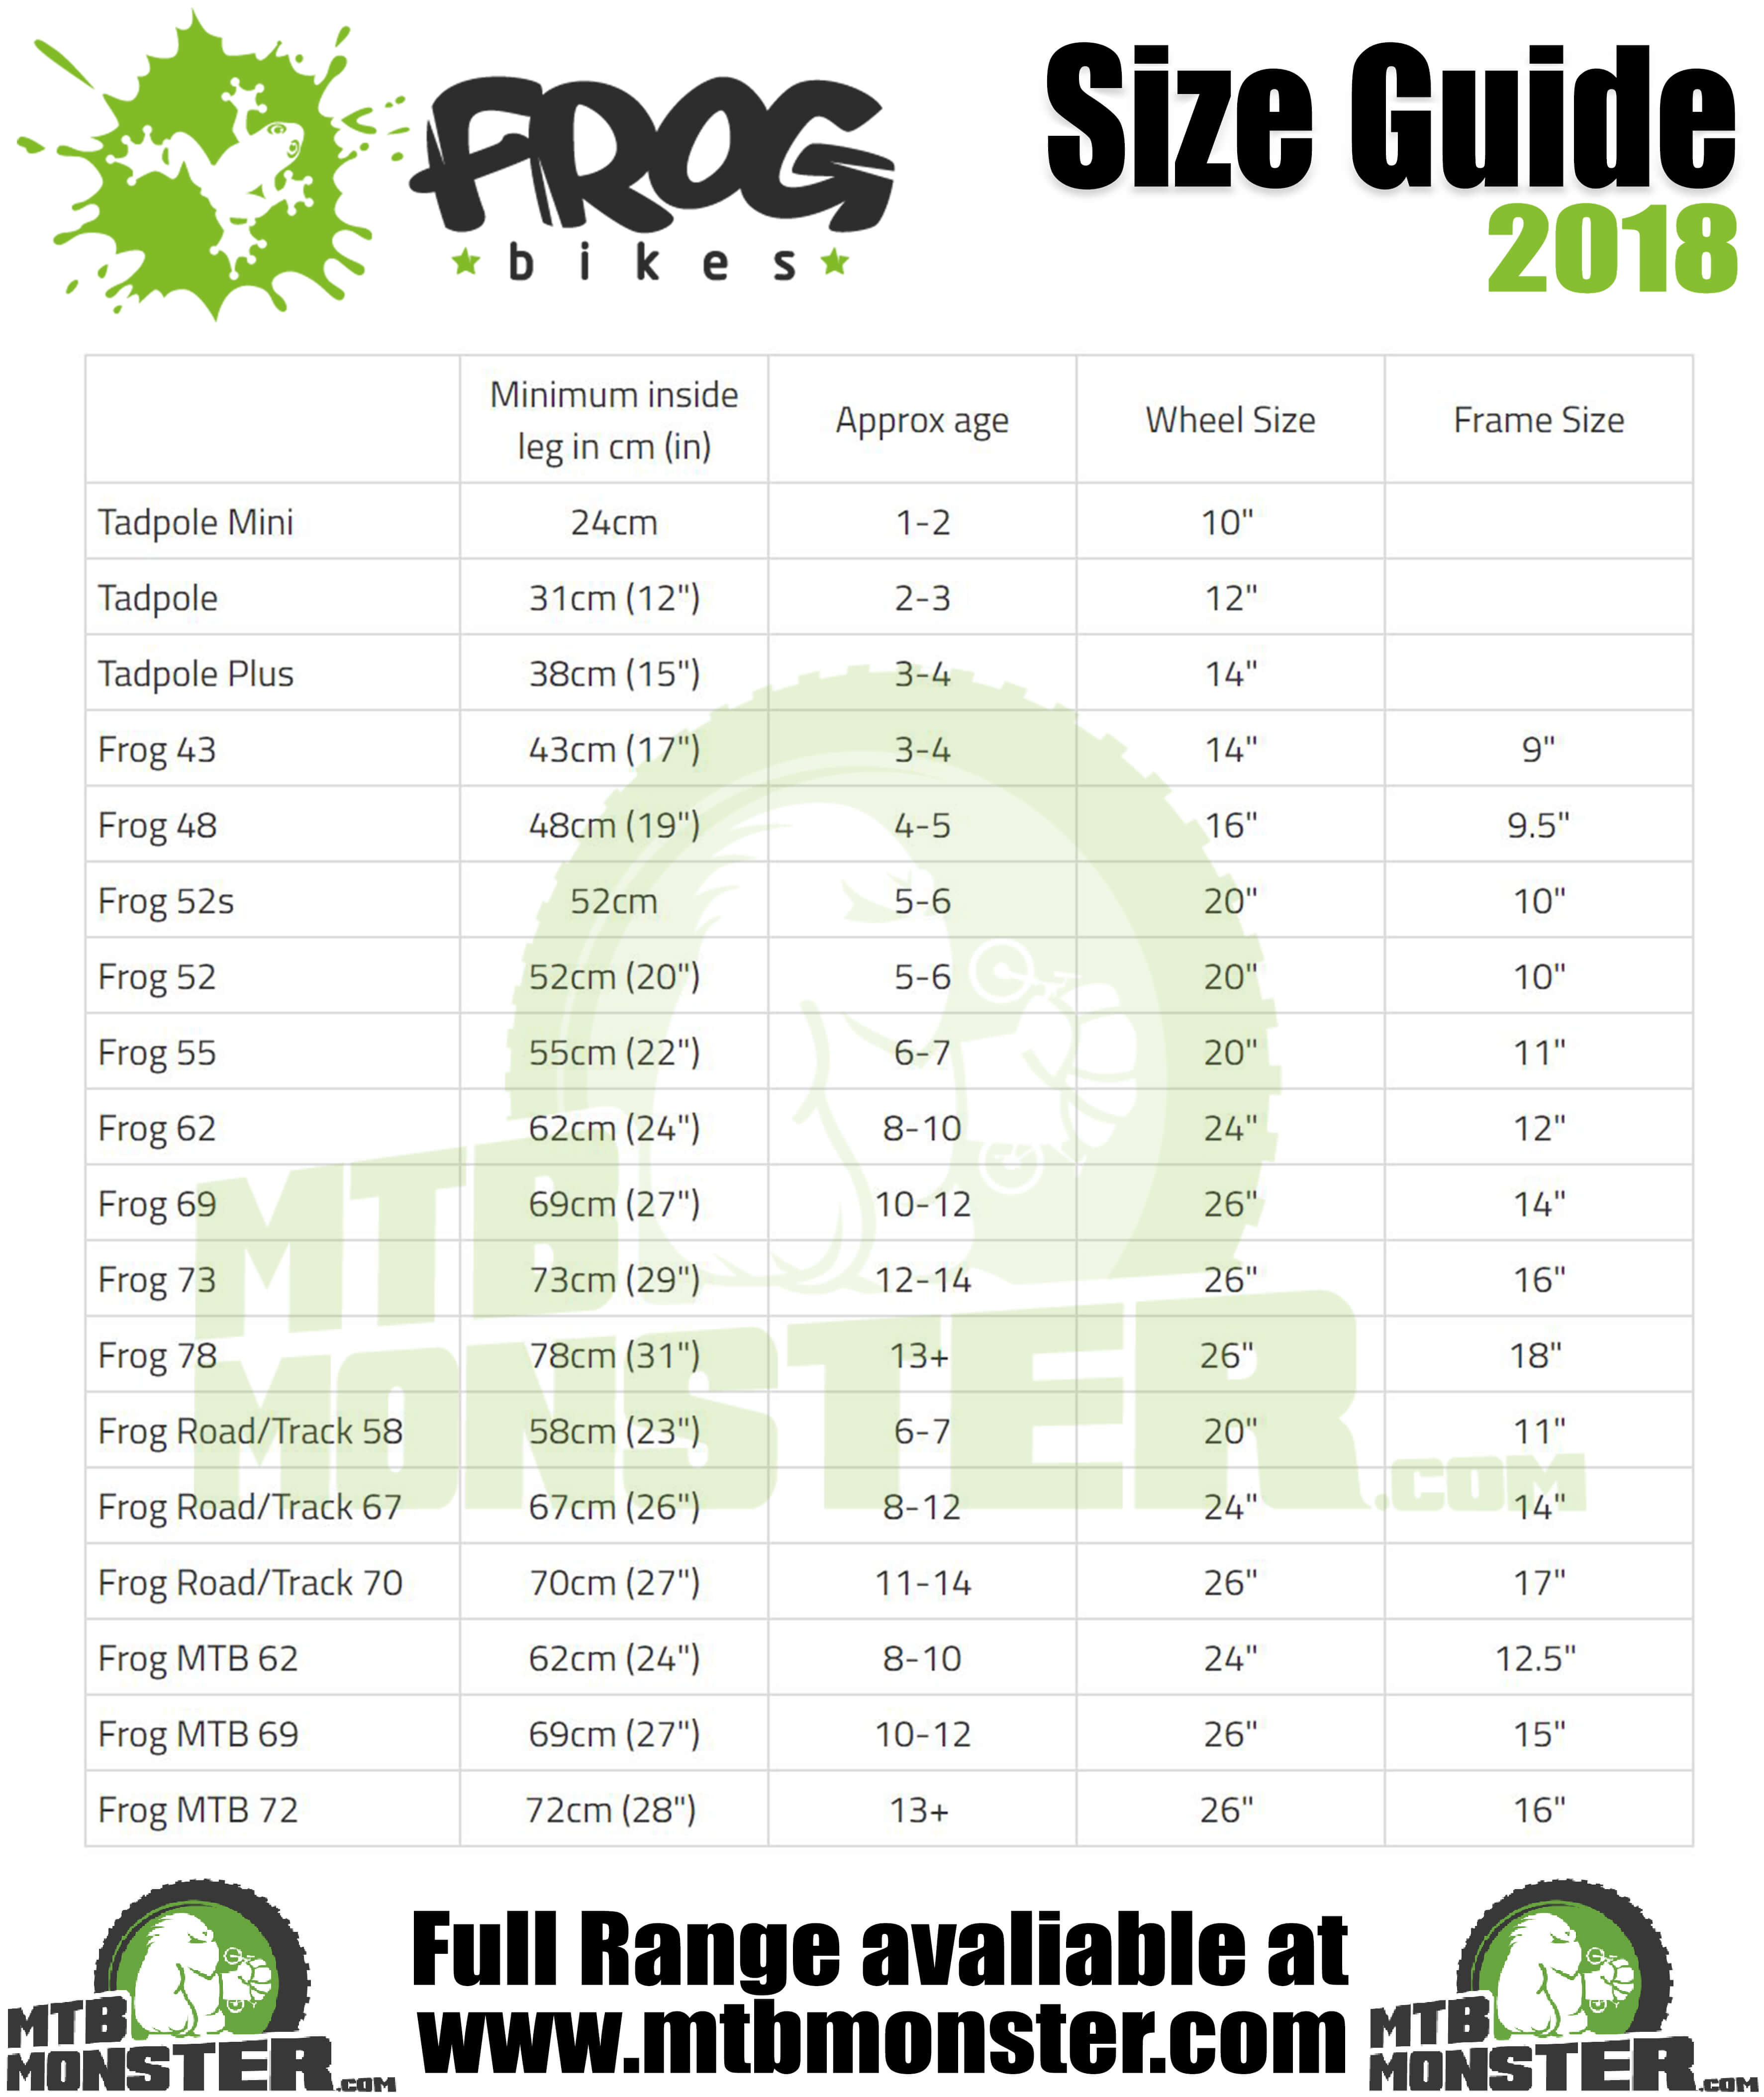 Frog Bikes Size Guide, Frog Bikes Sizing Chart 2018